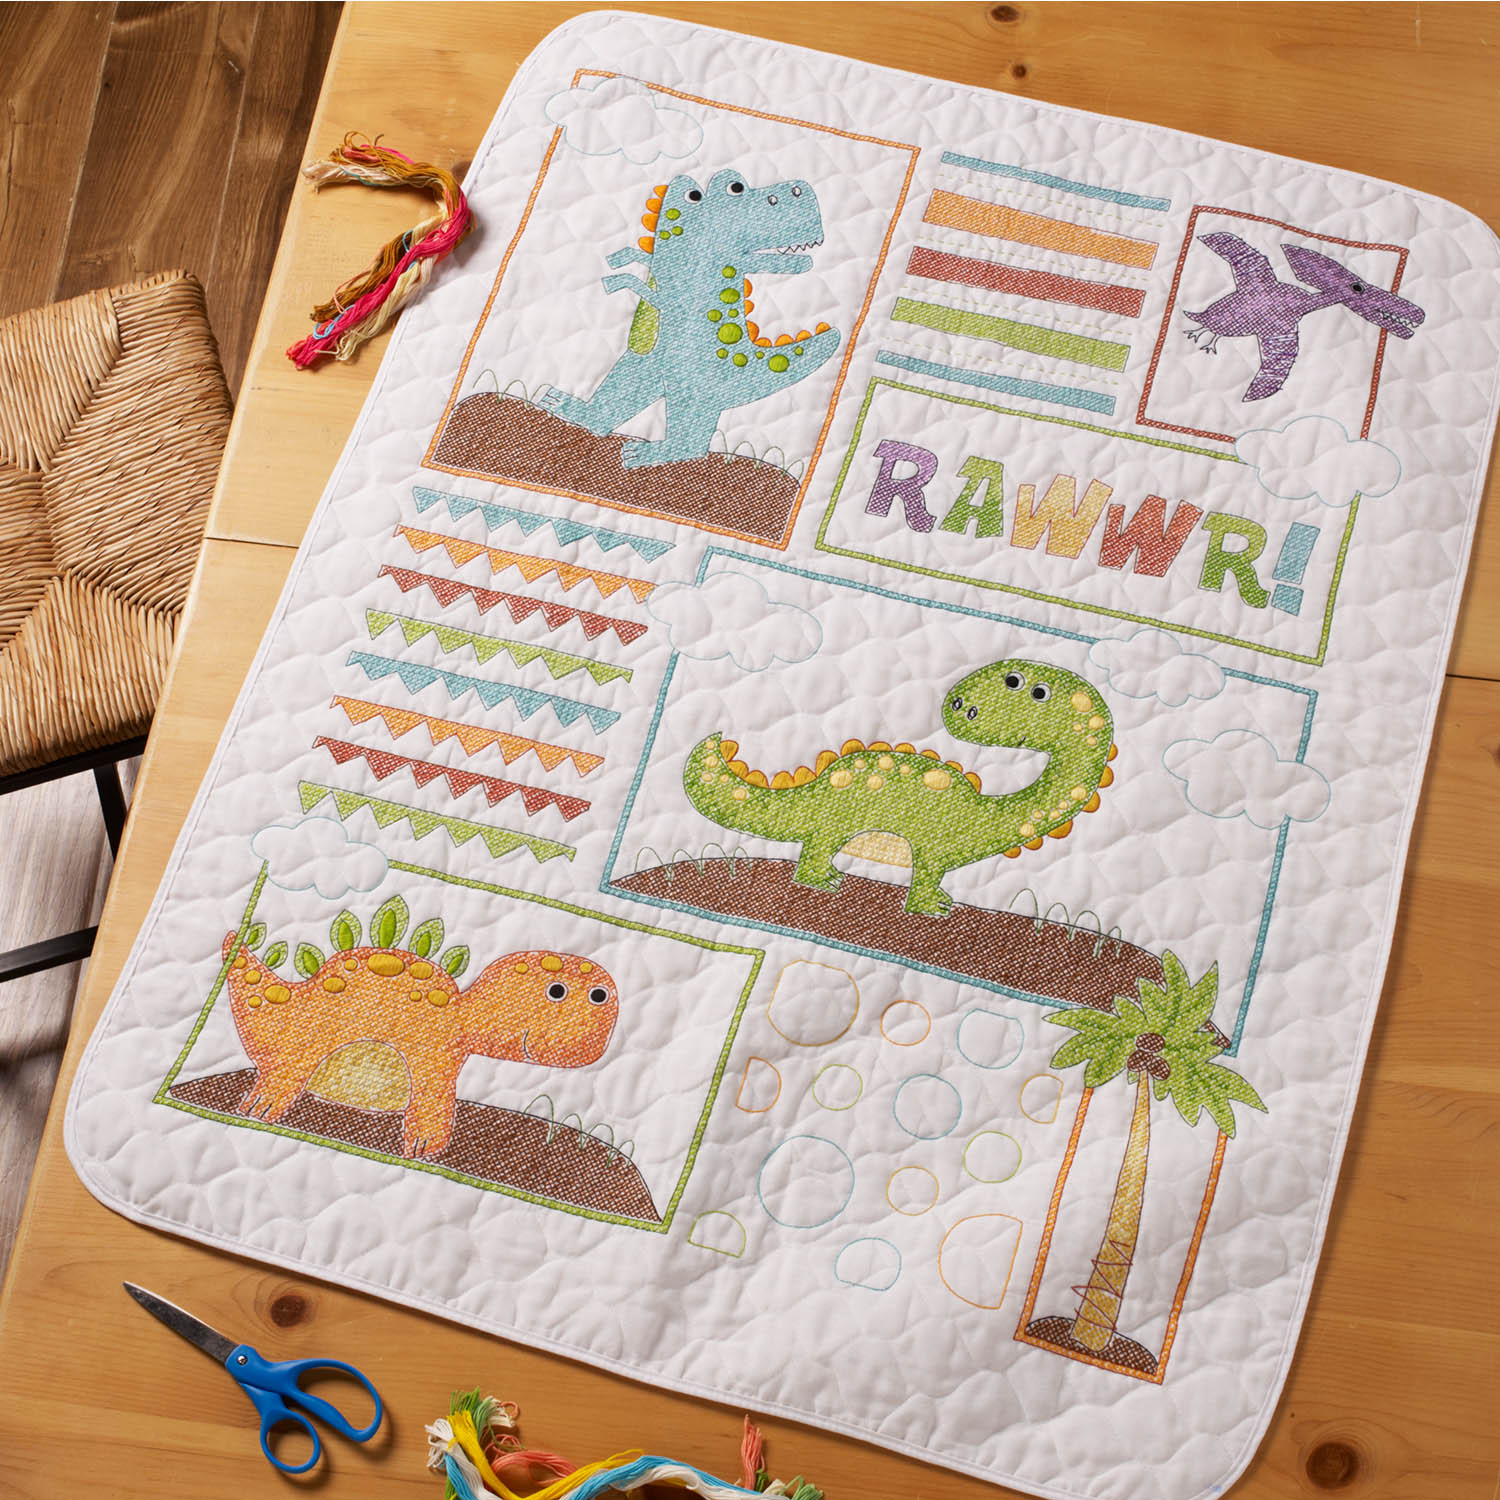 Bucilla ® Baby - Stamped Cross Stitch - Crib Ensembles - Dino Baby - Crib Cover